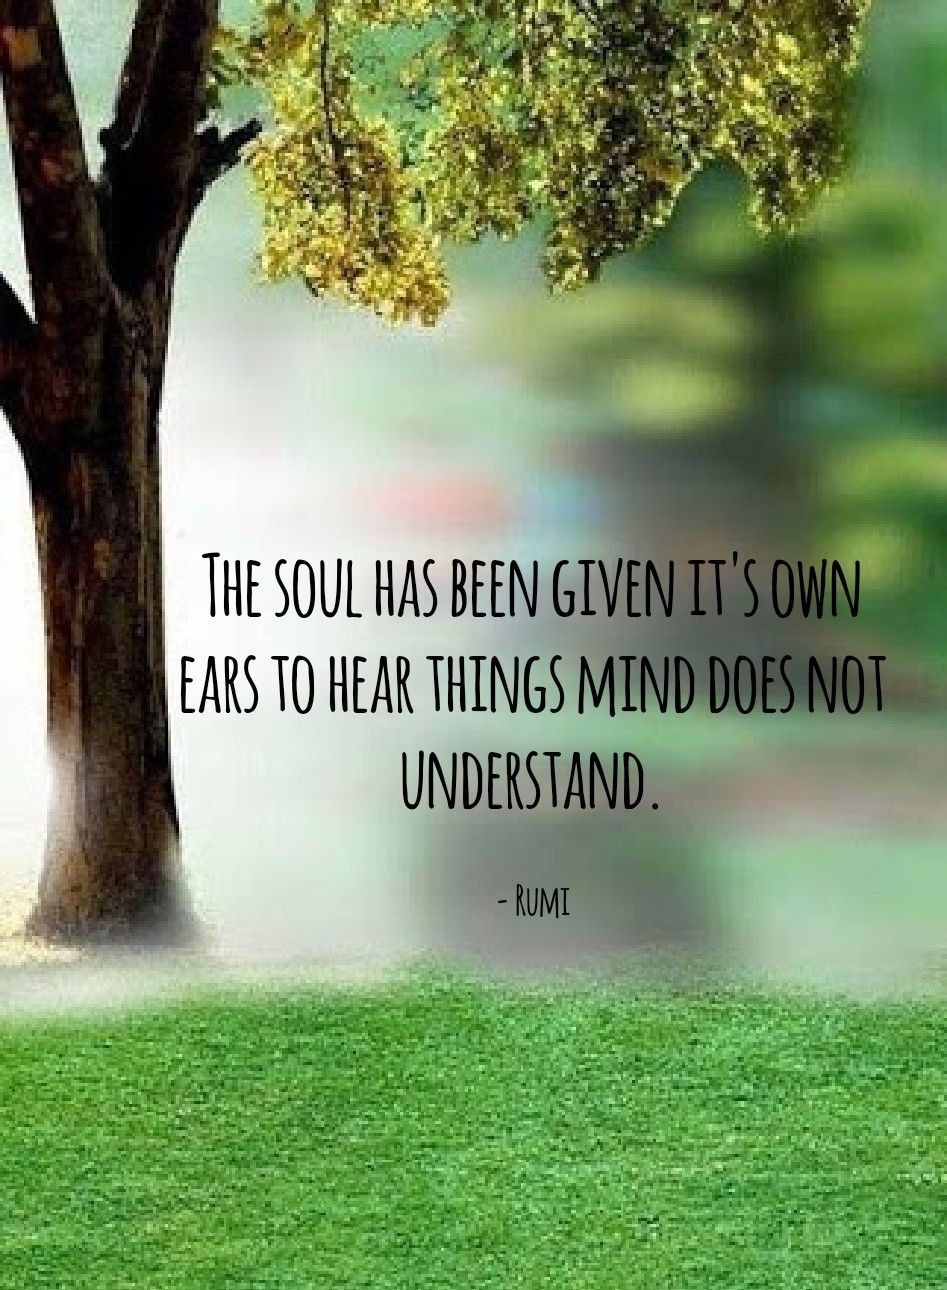 Soul talk #rumi #rumiquotes #quotes #journey #life #spirituality #sufi  #soul #conciousness #light #poetry | Rumi quotes soul, Rumi quotes, Rumi